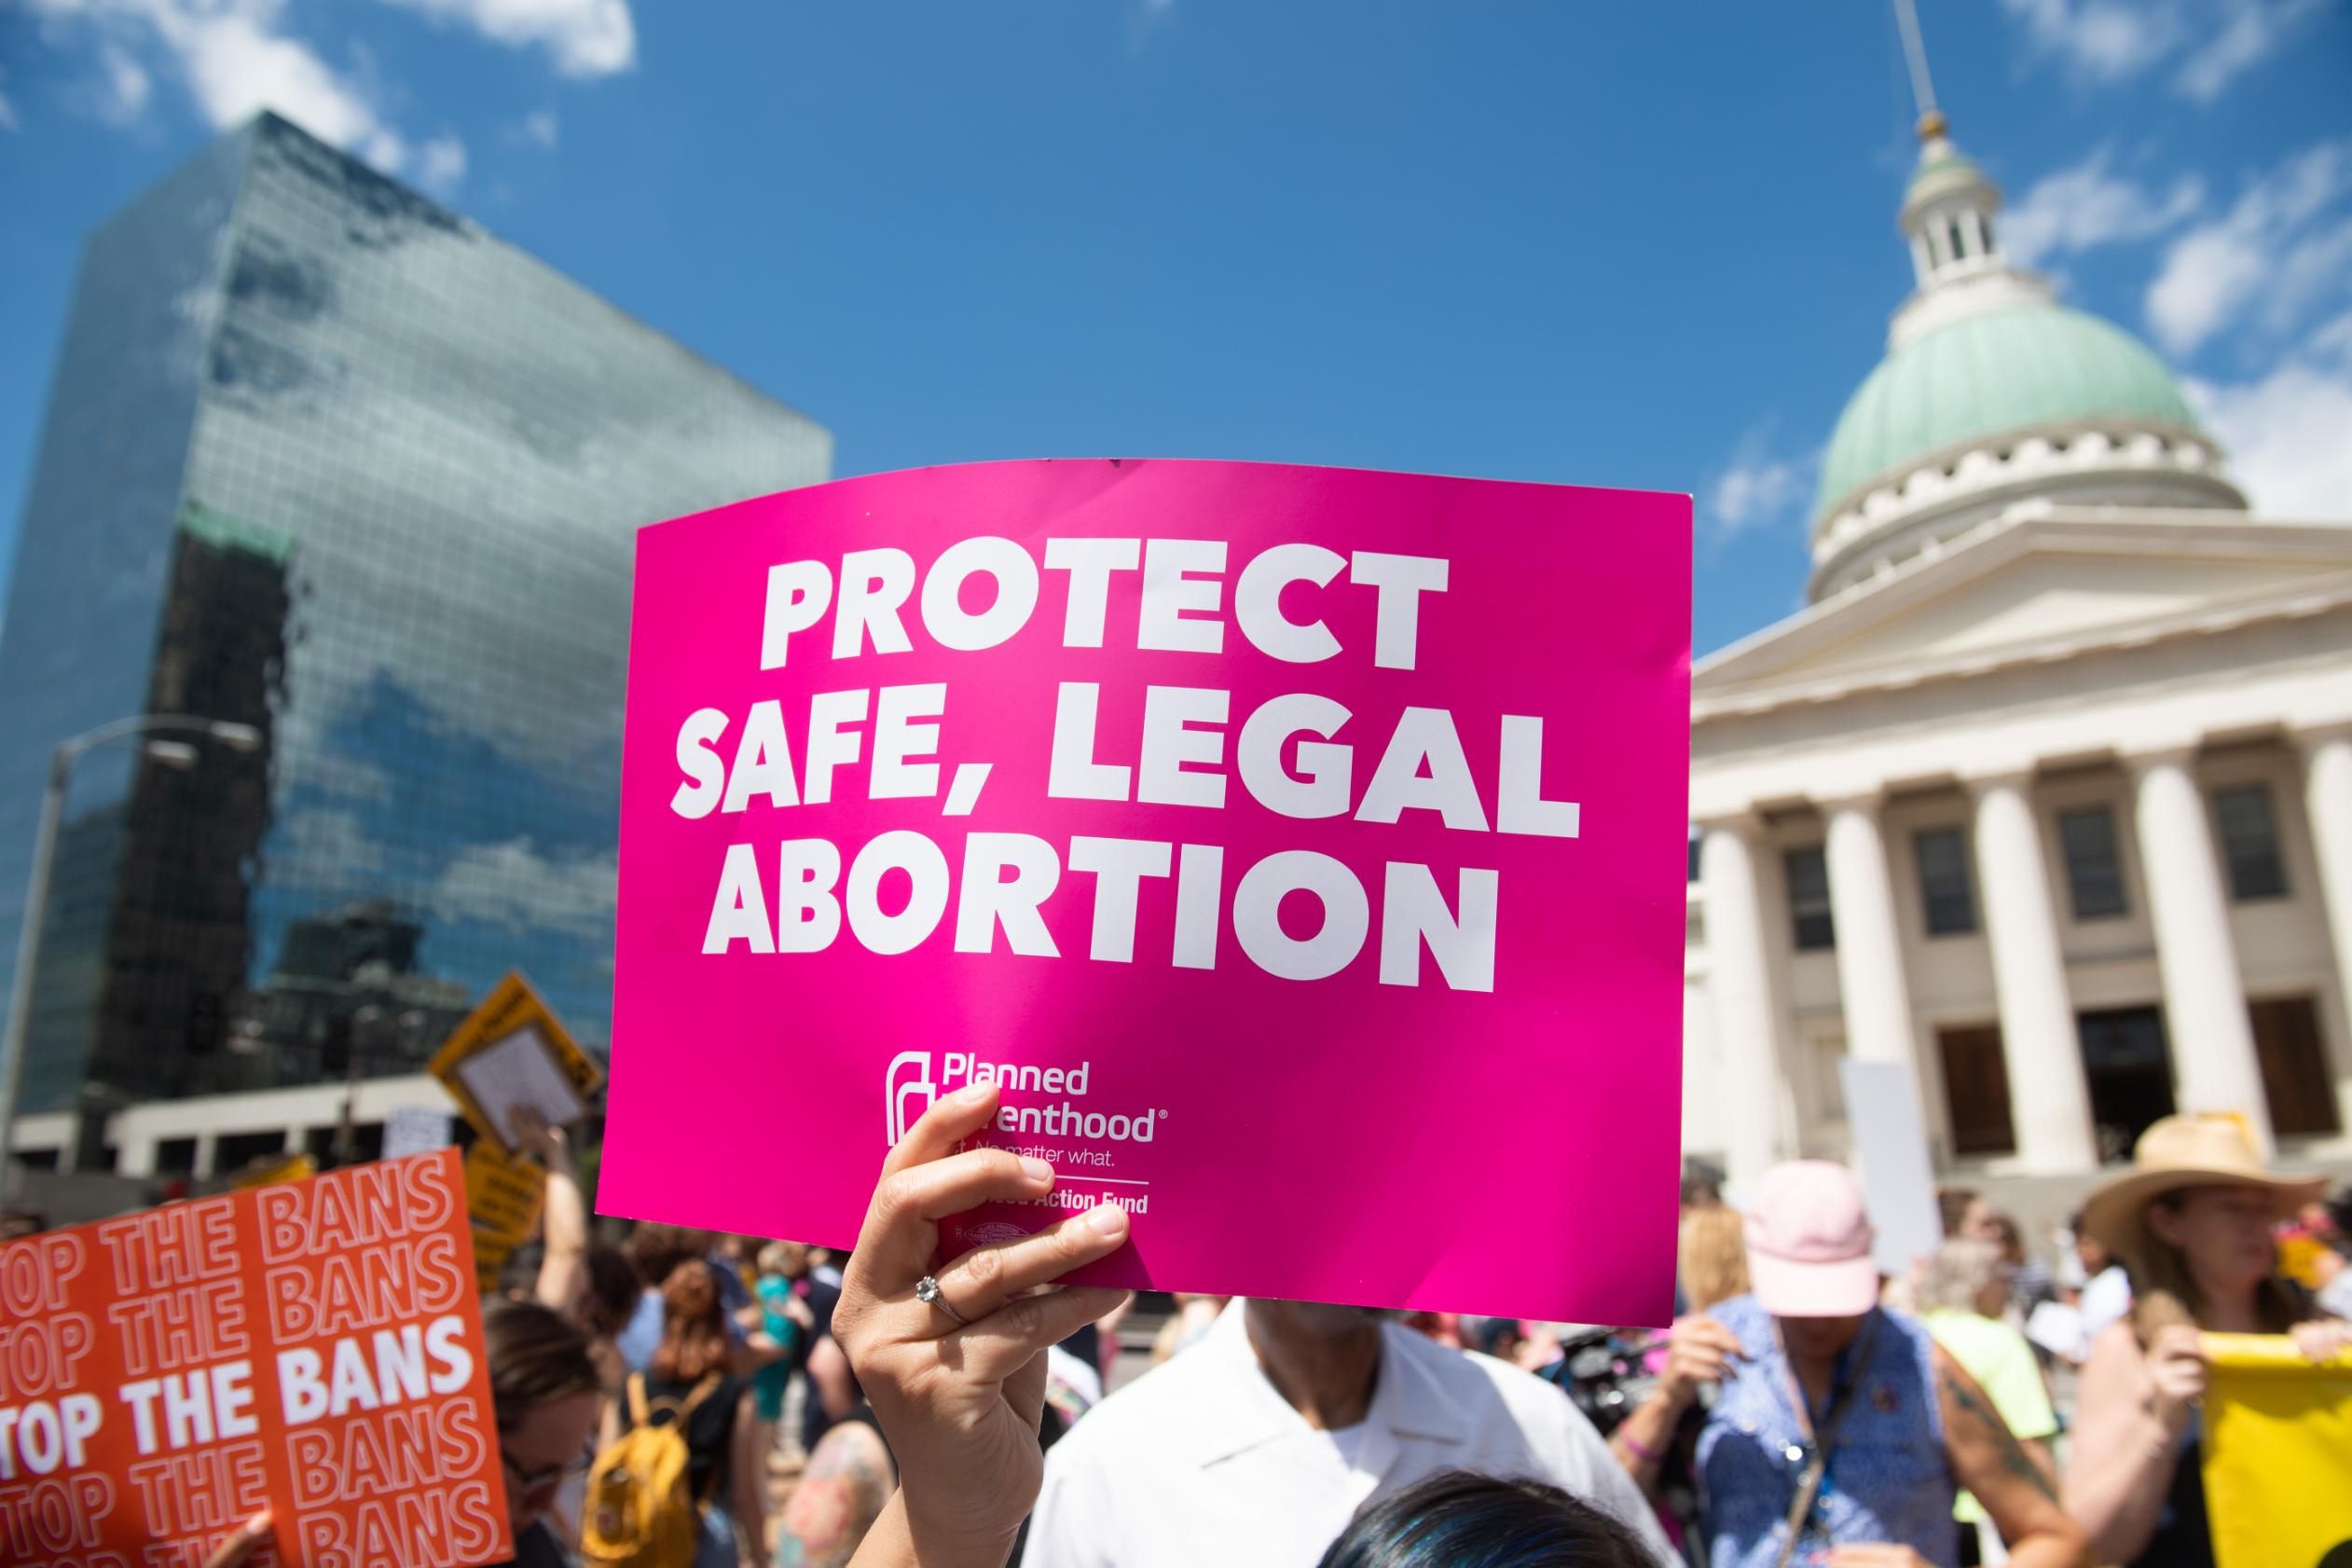 Dissatisfaction with abortion laws rises on both sides of the debate